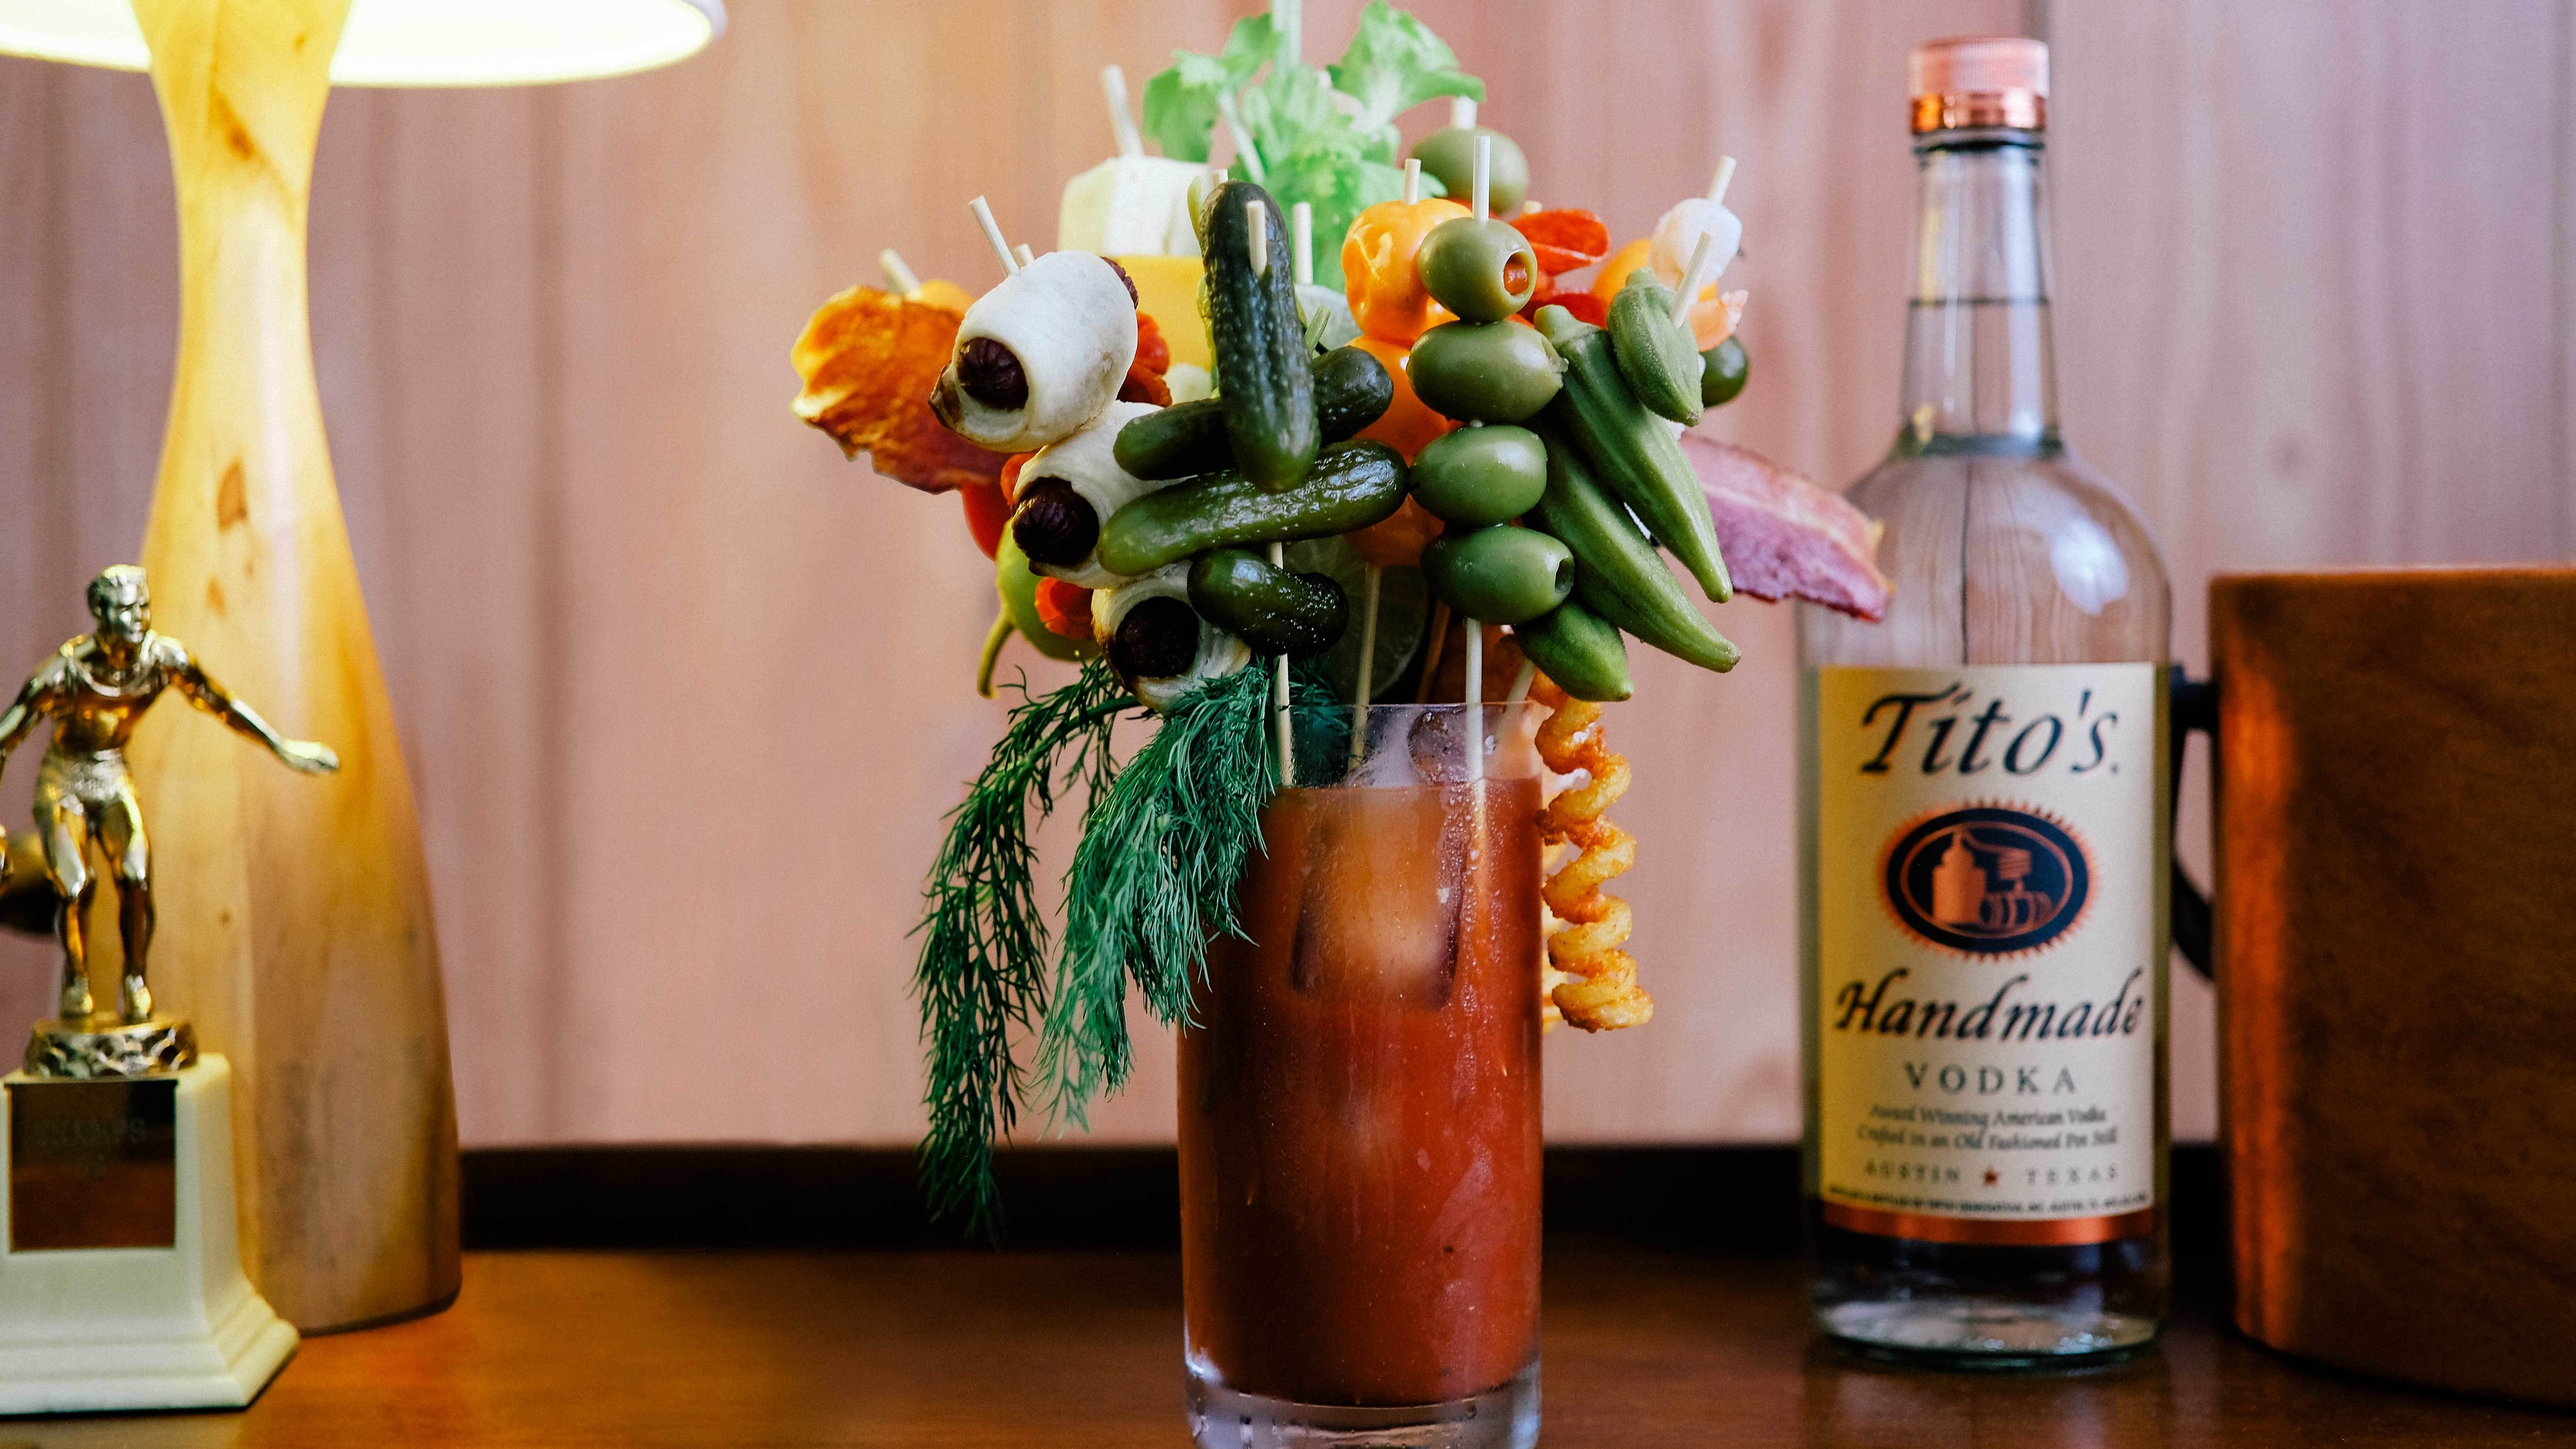 Tito's Bloody Mary loaded with garnishes including french fries, olives, pickles, bacon, onions, celery